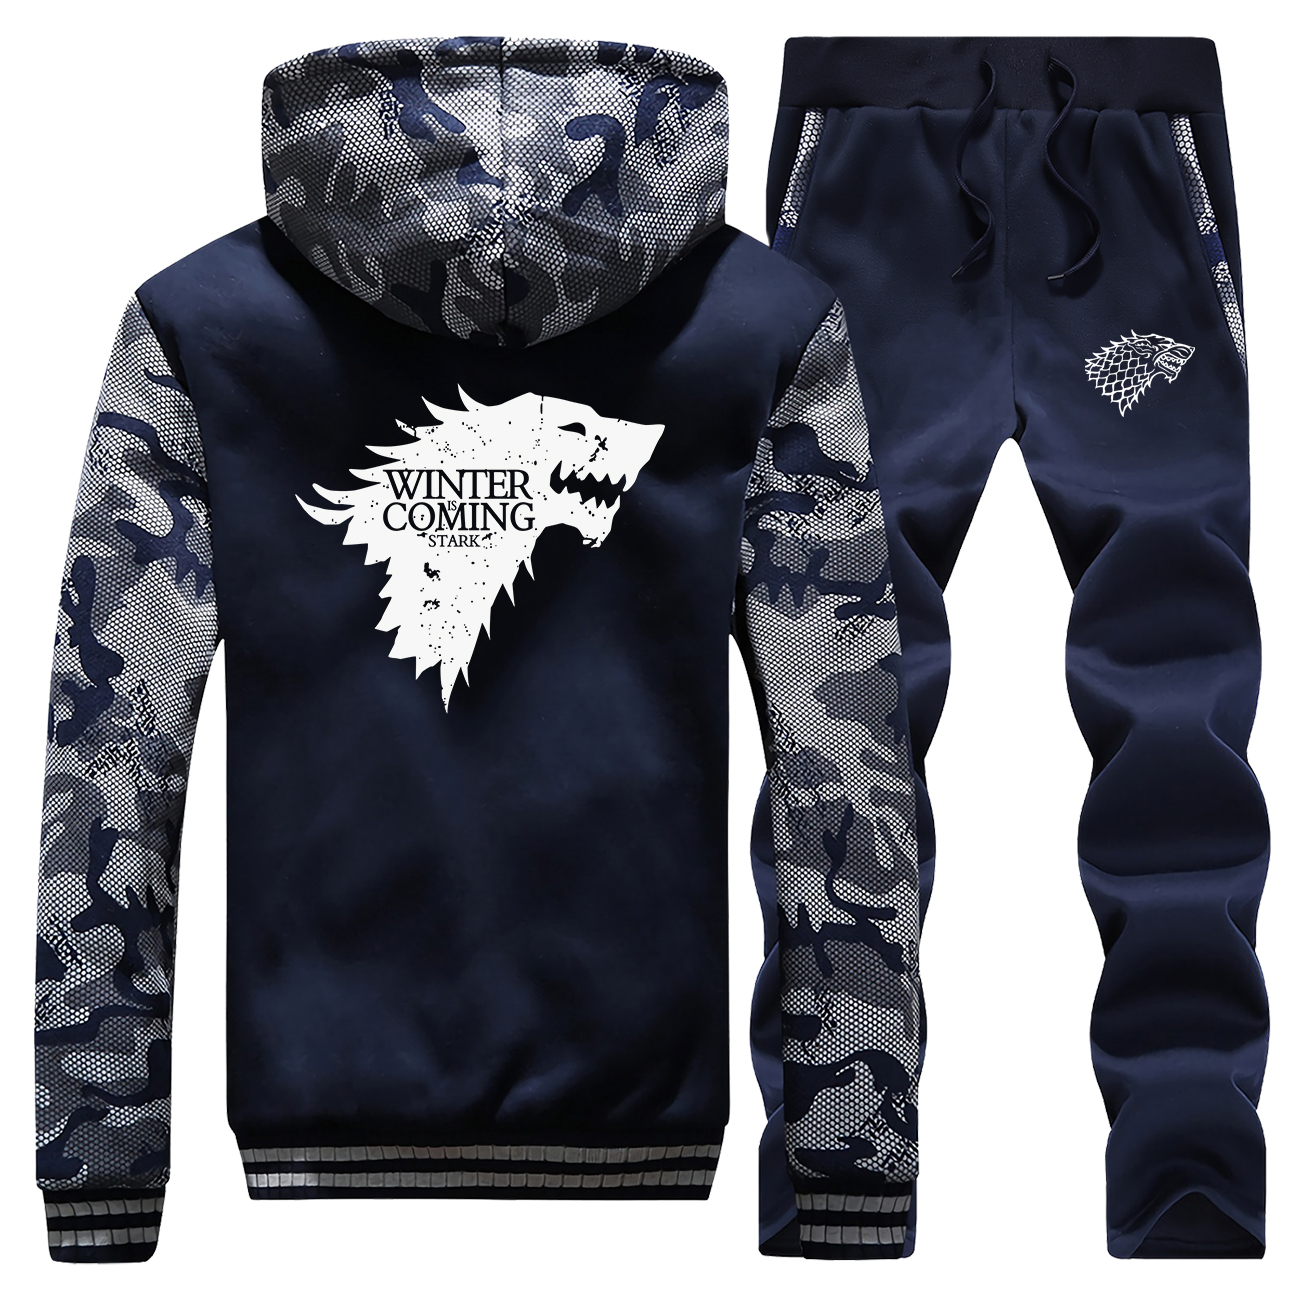 Winter Is Coming Hoodie Sweatshirts Sets Men Jacket+Pants 2 Piece Set Mens Camouflage Hoodies Trousers Suit Coat Wolf Tracksuit